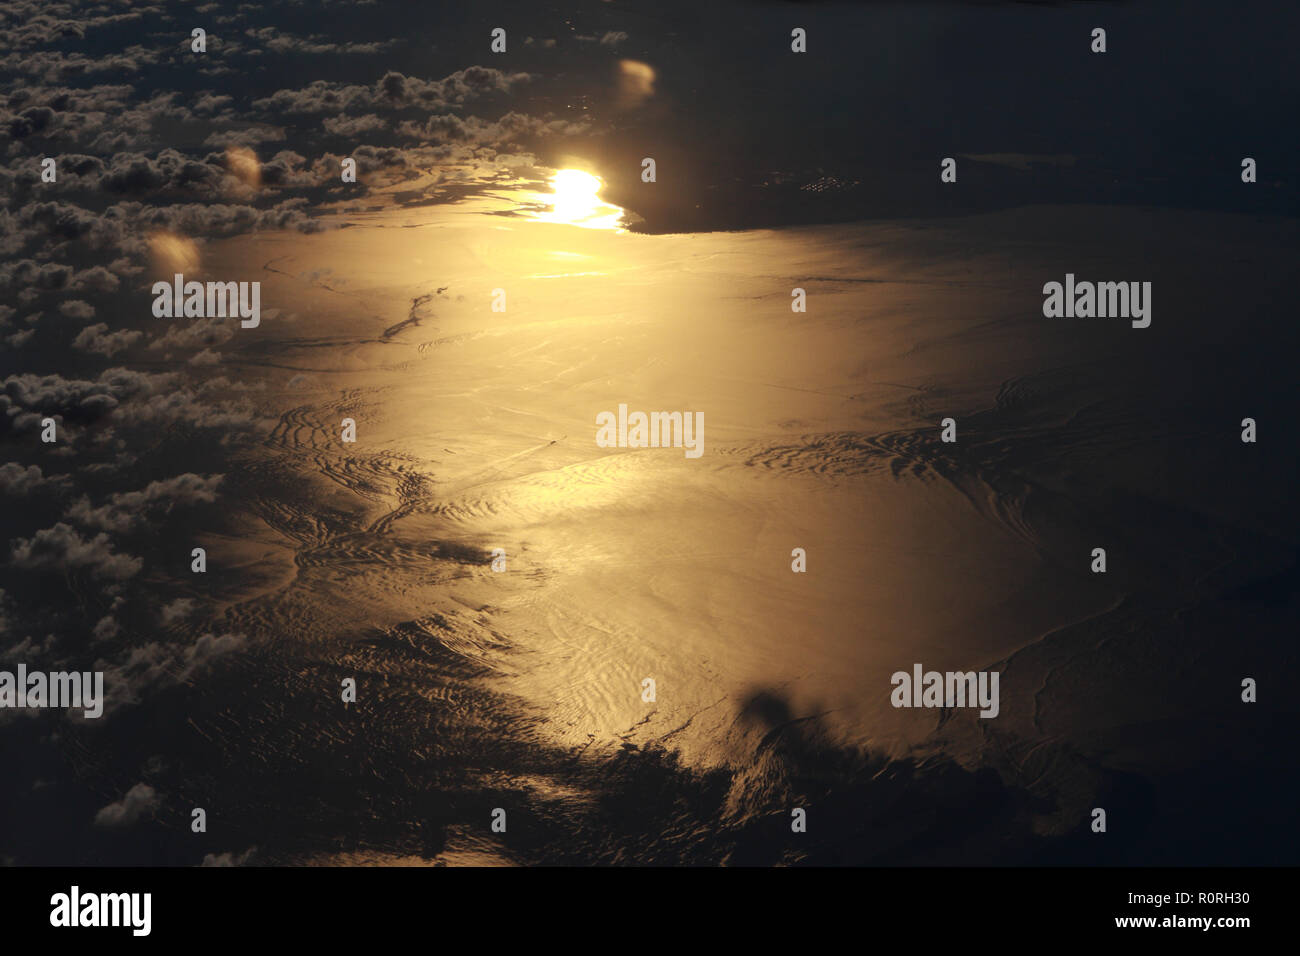 Arial view of Sun reflected on water - Stock Image